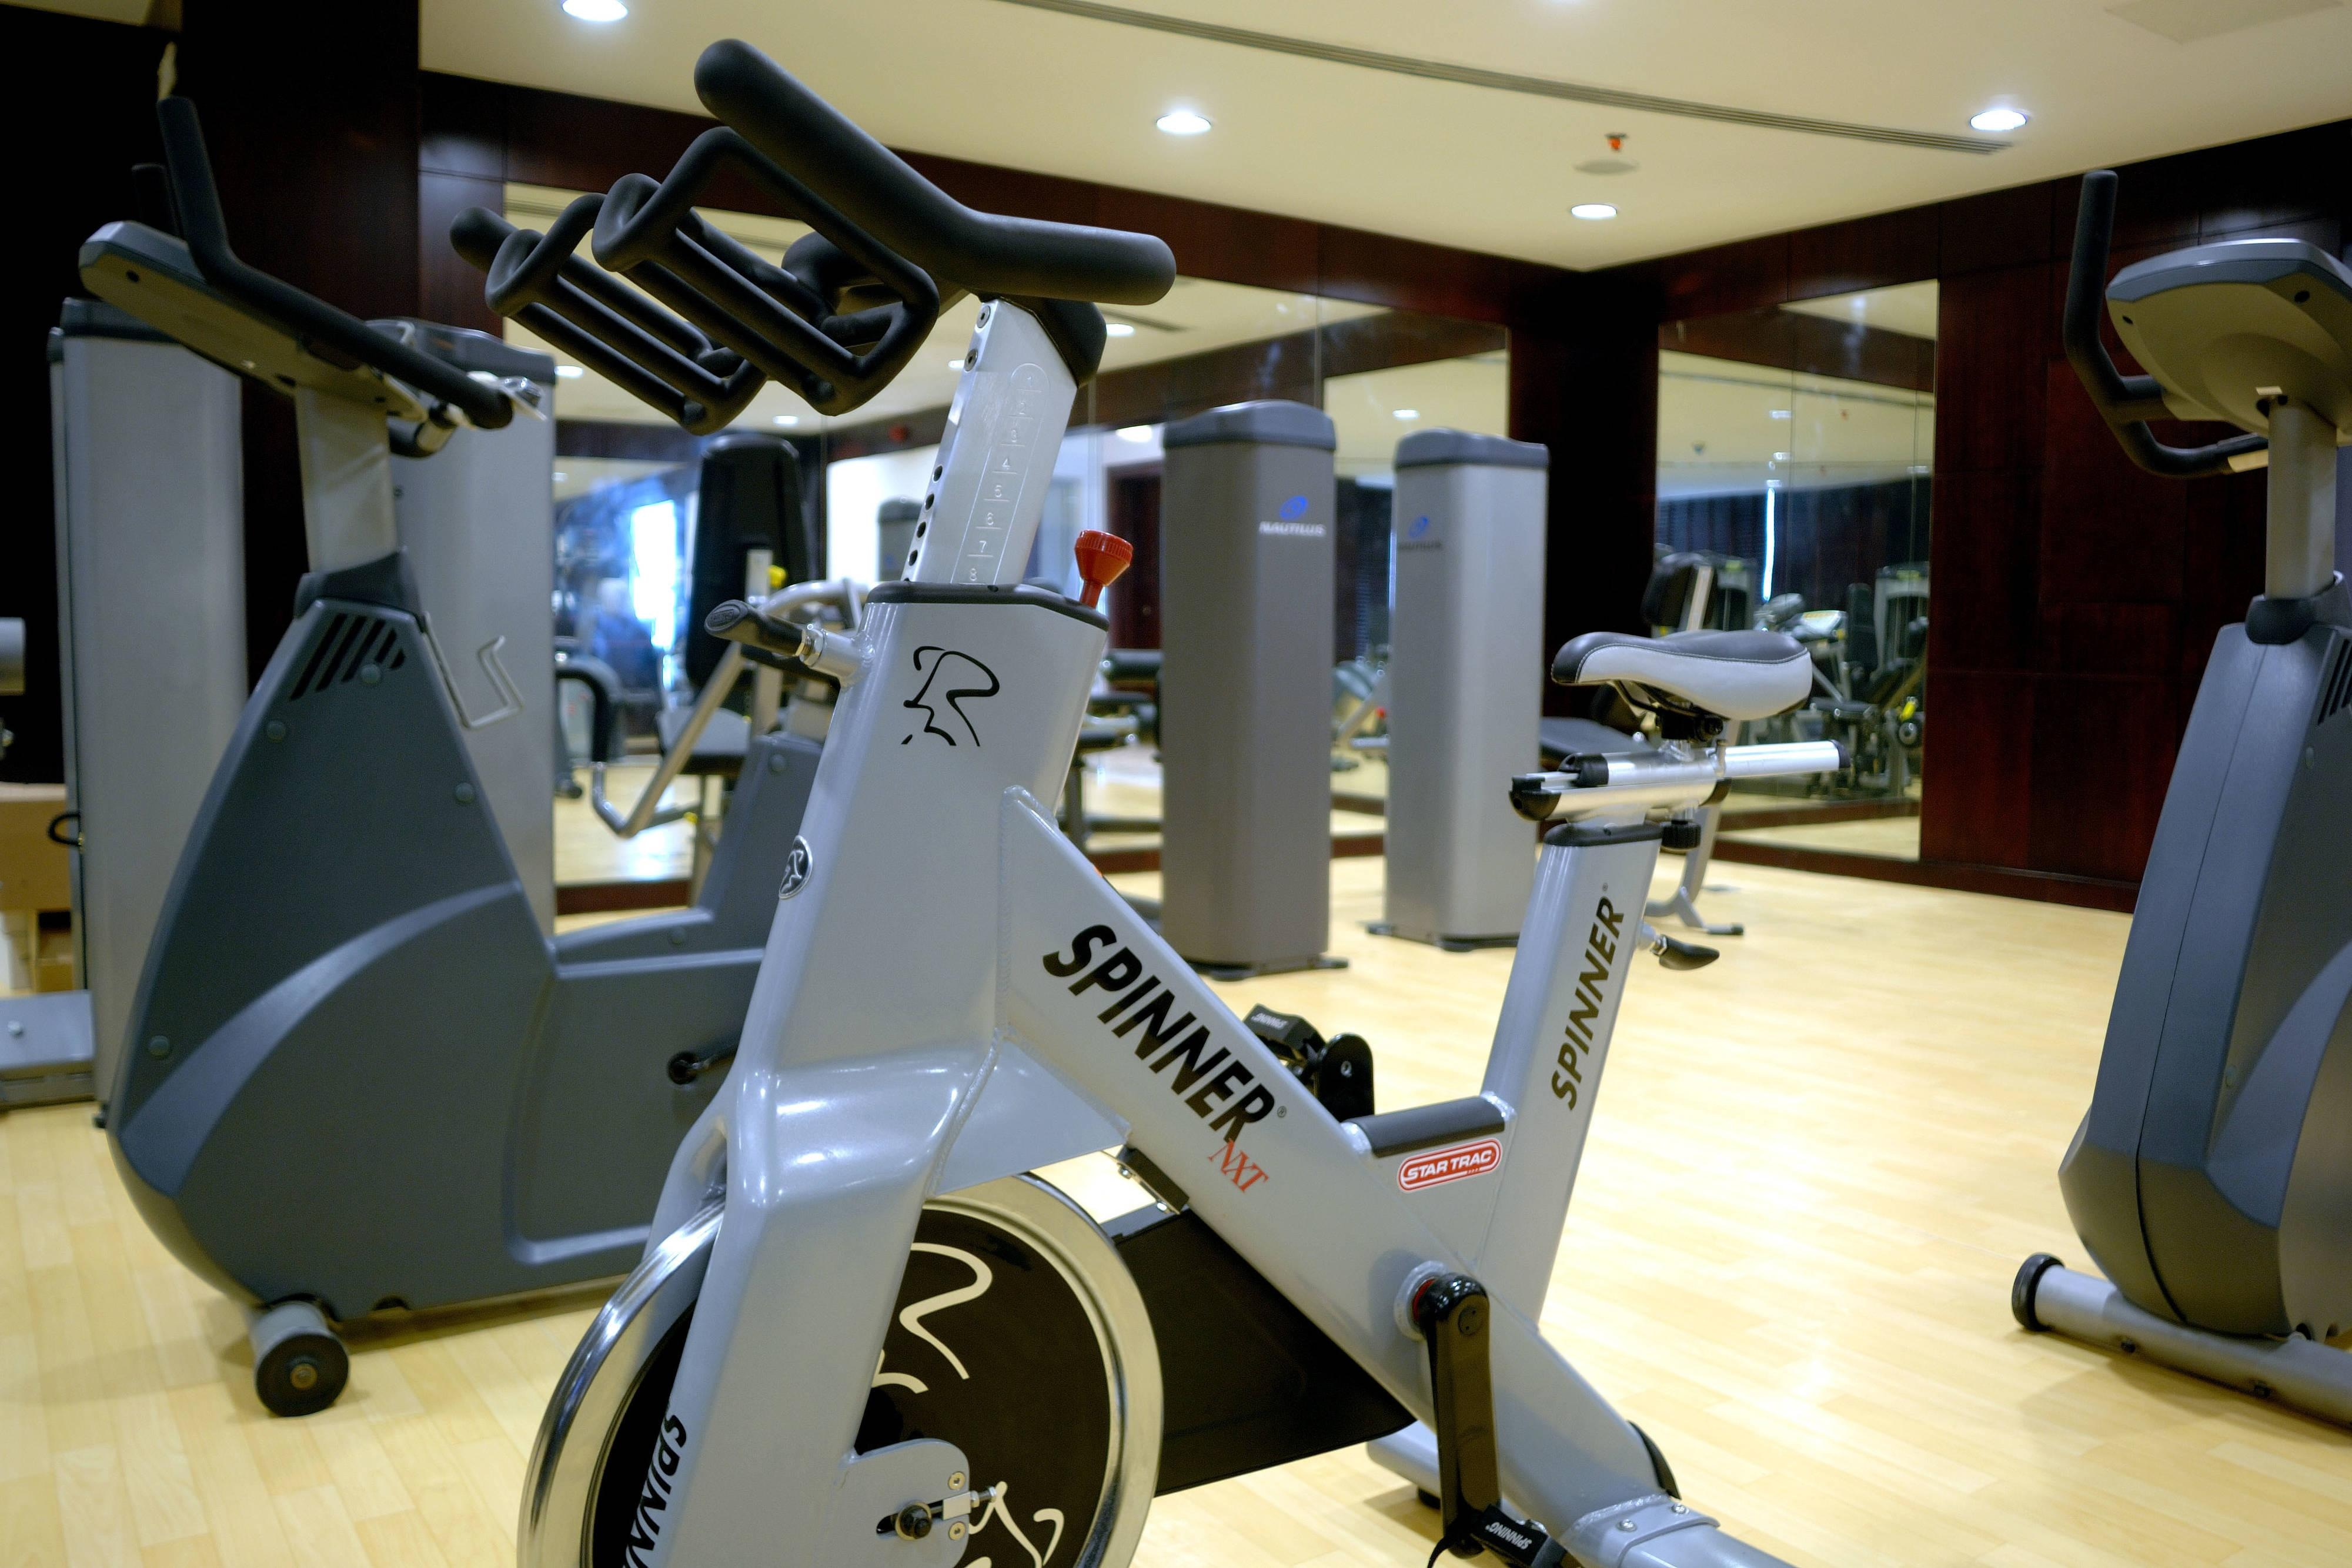 Manama Hotel with Fitness Center